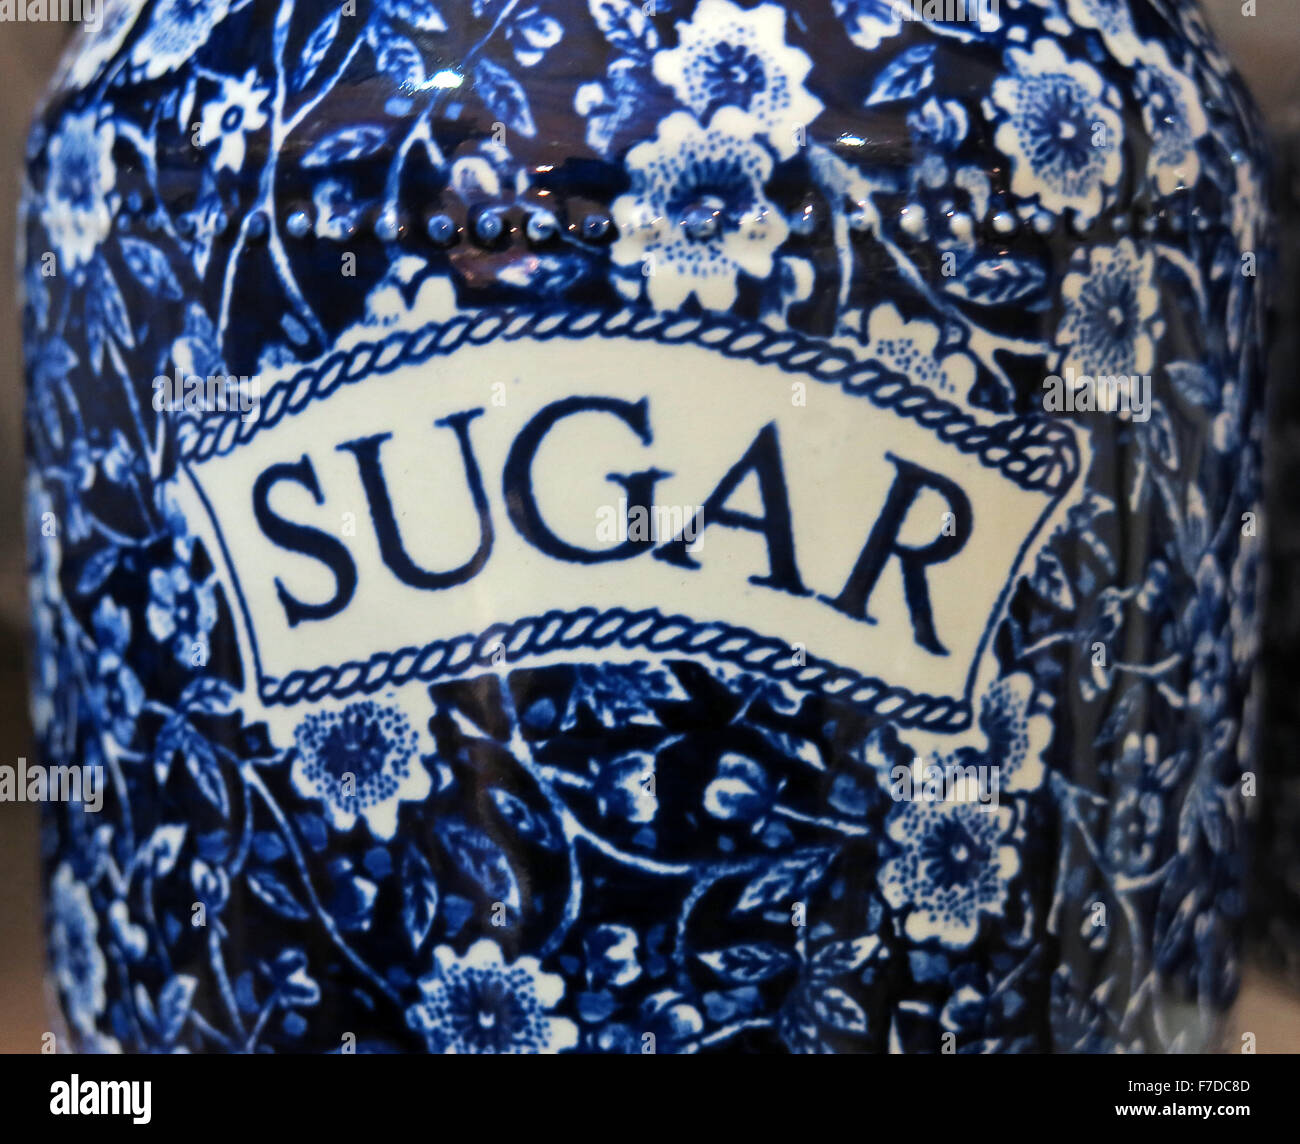 Pottery,Sugar,Jar,sweet,Delft,Delf,style,Netherlands,Holland,royal,Royal Delft,factory,sugars,sweets,pot,pots,classic,kitchen,art,authentic,ceramic,dangers,over,consumption,overconsumption,too,much,in,diet,spoonfuls,high,carbohydrate,Sucrose,Dutch Delft,blue & white,Blue and White,too much,GoTonySmith,bleu,for,sale,painted,recipe,dessert,candy,sweets,soda,sodas,porcelain,corn,syrup,obesity,obese,fat,fatty,fattening,food,hidden,monosaccharide,monosaccharidess,disaccharide,disaccharides,taste,artificial,sweeteners,sugarcane,sugarbeet,Obesity,infant,tooth,dental,carries,caries,diet,dietary,intake,reducing,dieting,container,vessel,jars,close,up,closeup,close-up,word,the,zucker,Diabetes,type,type1,type1,Azucar,Sucre,Sukker,Buy Pictures of,Buy Images Of,Too much sugar,Delft Blue,Delft White,For Sale,Corn Syrup,Table Sugar,Hidden Sugar,Hidden Sugars,Sweet taste,Sweet tasting,artificial sweeteners,Sugar Beet,high in sugar,high in sugars,infant Obesity,Child Obesity,Tooth Decay,reducing sugar,reducing sugar in diet,The word Sugar,Type 1,Type 2,Word Sugar,The Apprentice